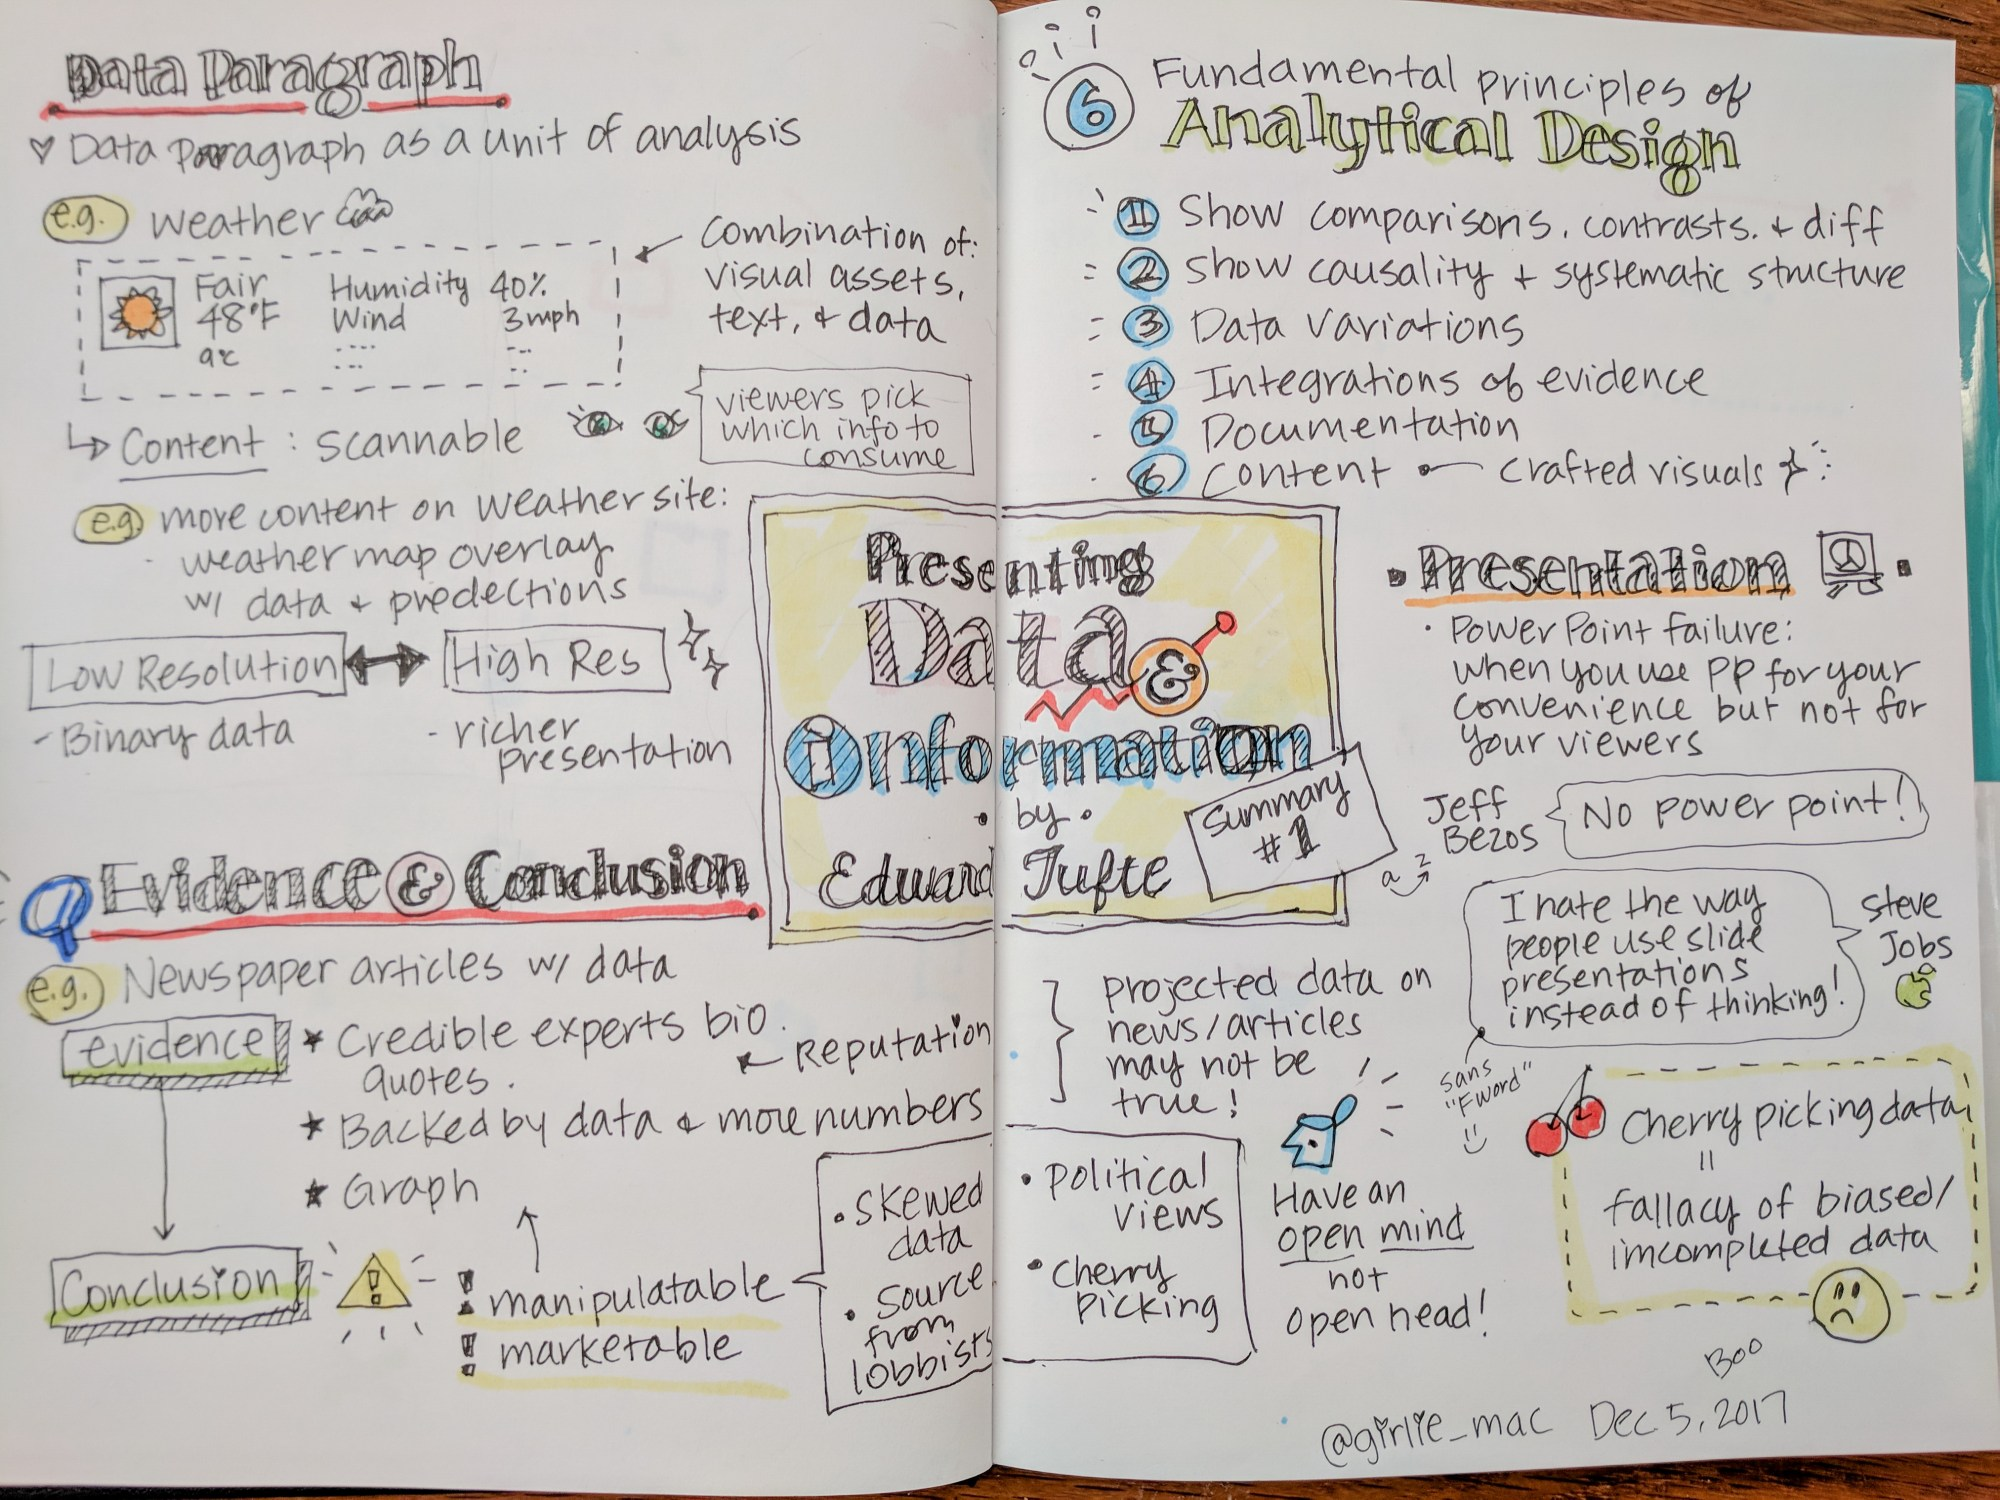 hight resolution of my notes from tufte course 1